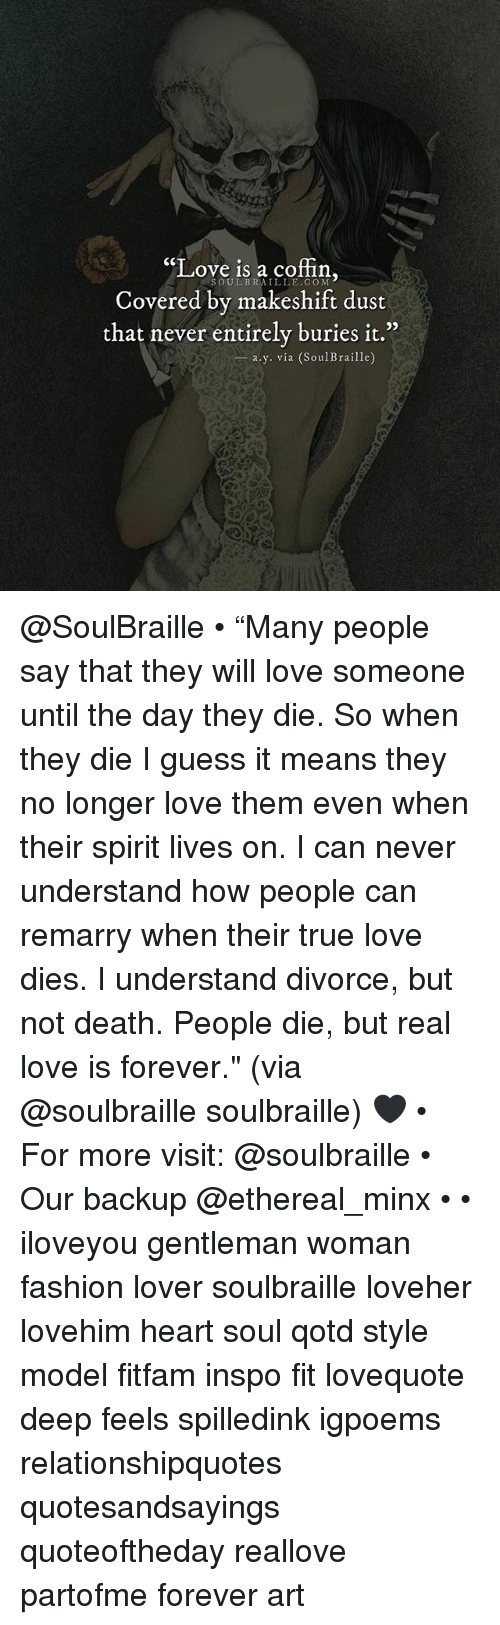 Fashion love and memes love is a coffin soulbraille covered by